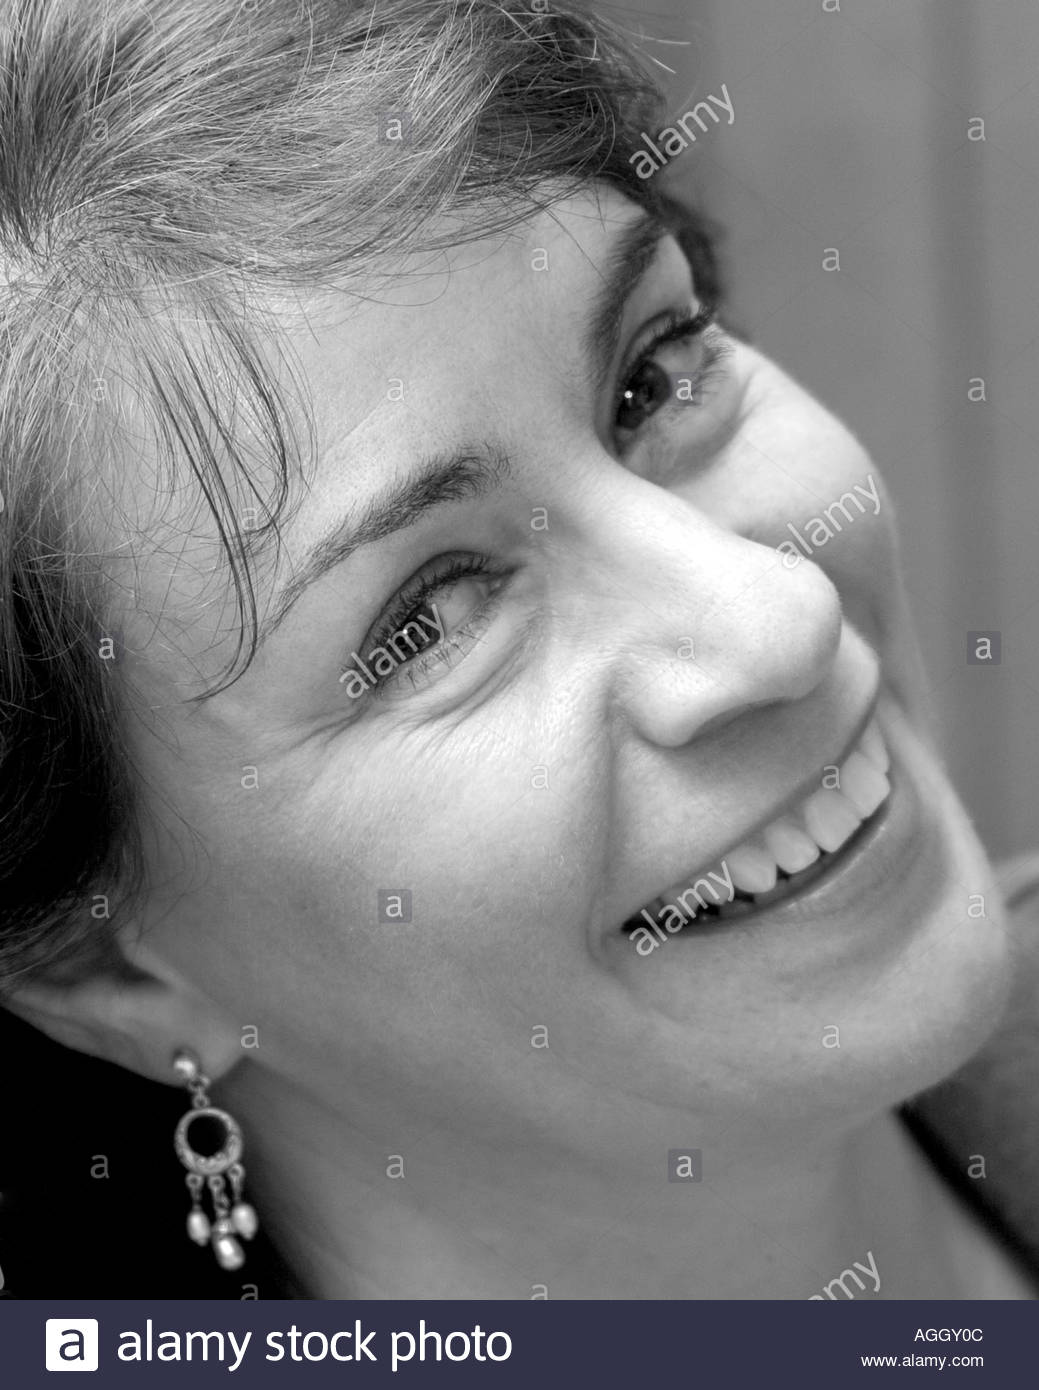 Stock Photo - woman forties or fifties smiling at the camera exuding  confidence and happiness